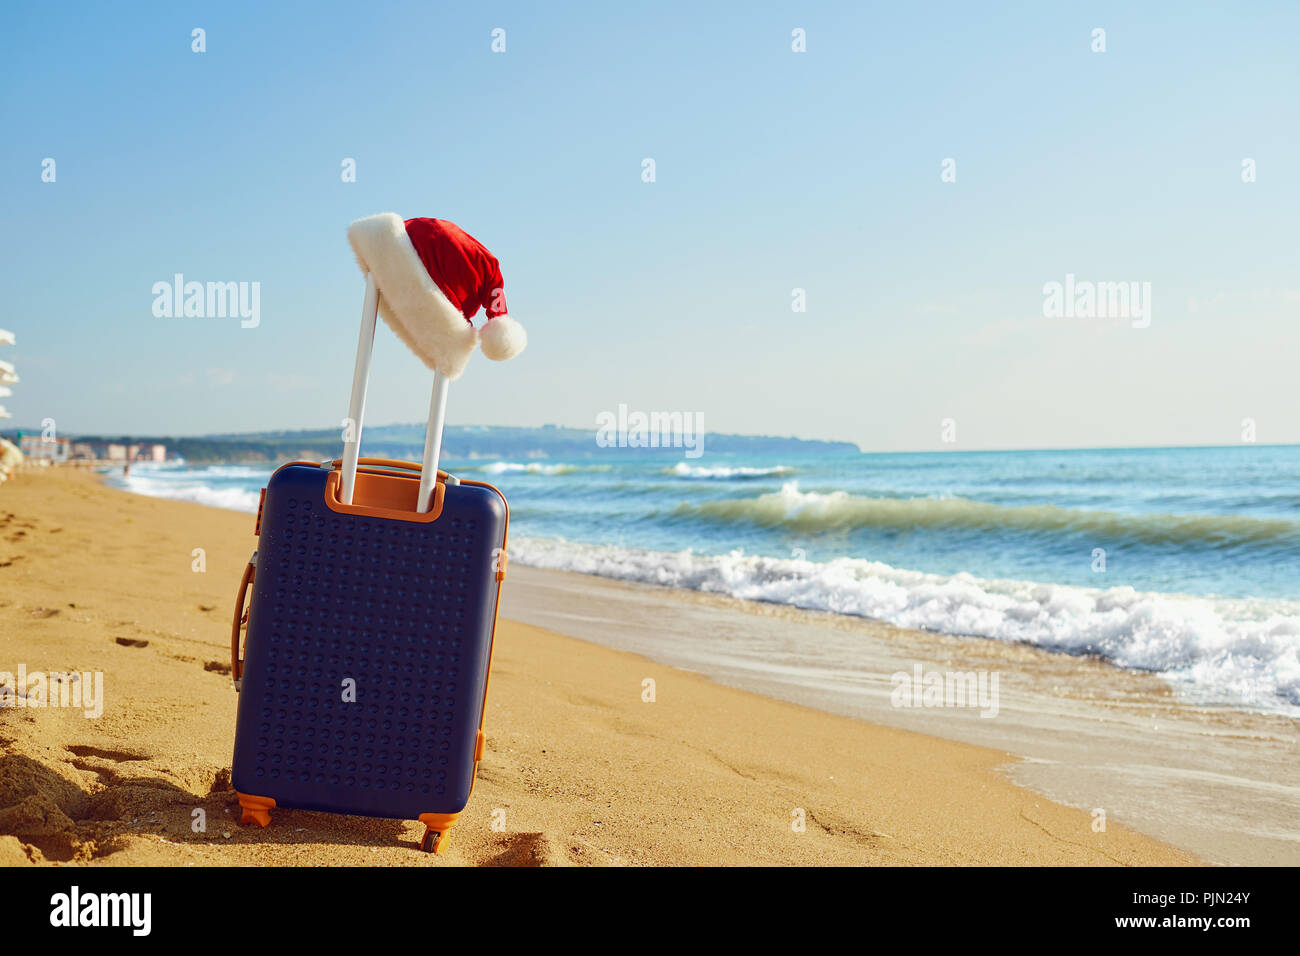 Christmas Beach.Santa Claus Hat On A Suitcase On The Beach By The Sea